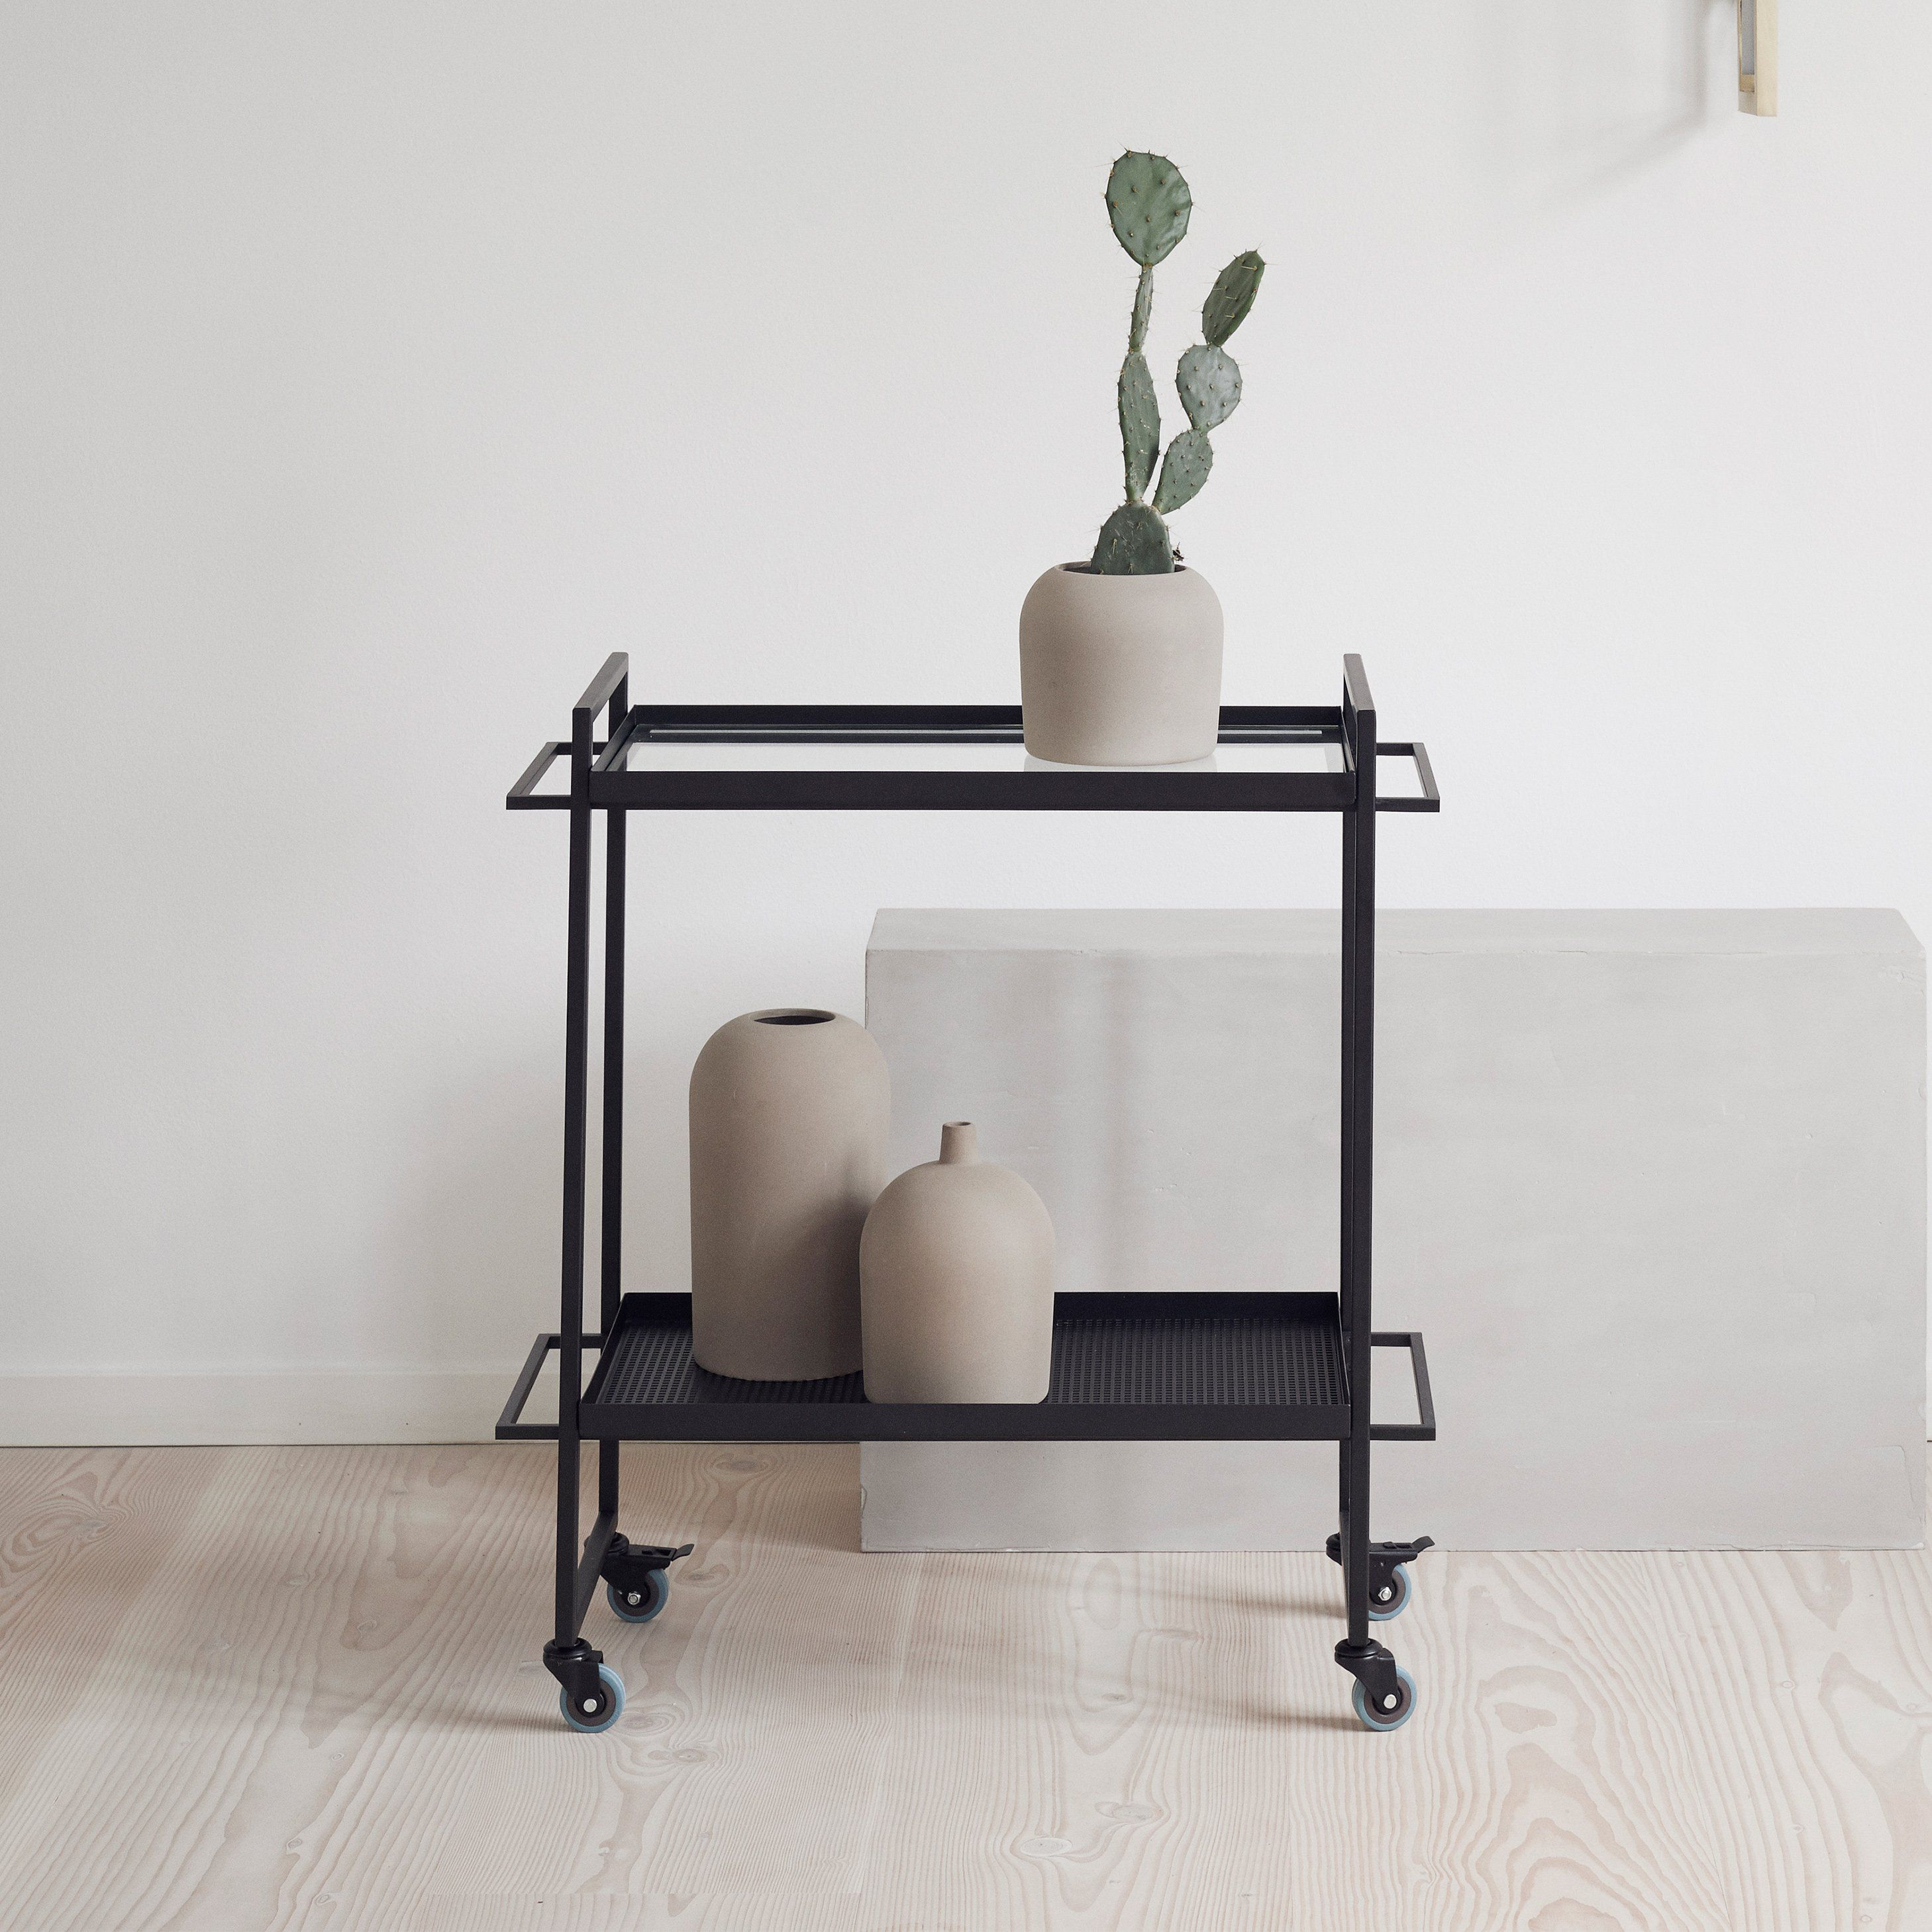 Kristina Dam Studio - Bauhaus Trolley - Sort | Pinterest